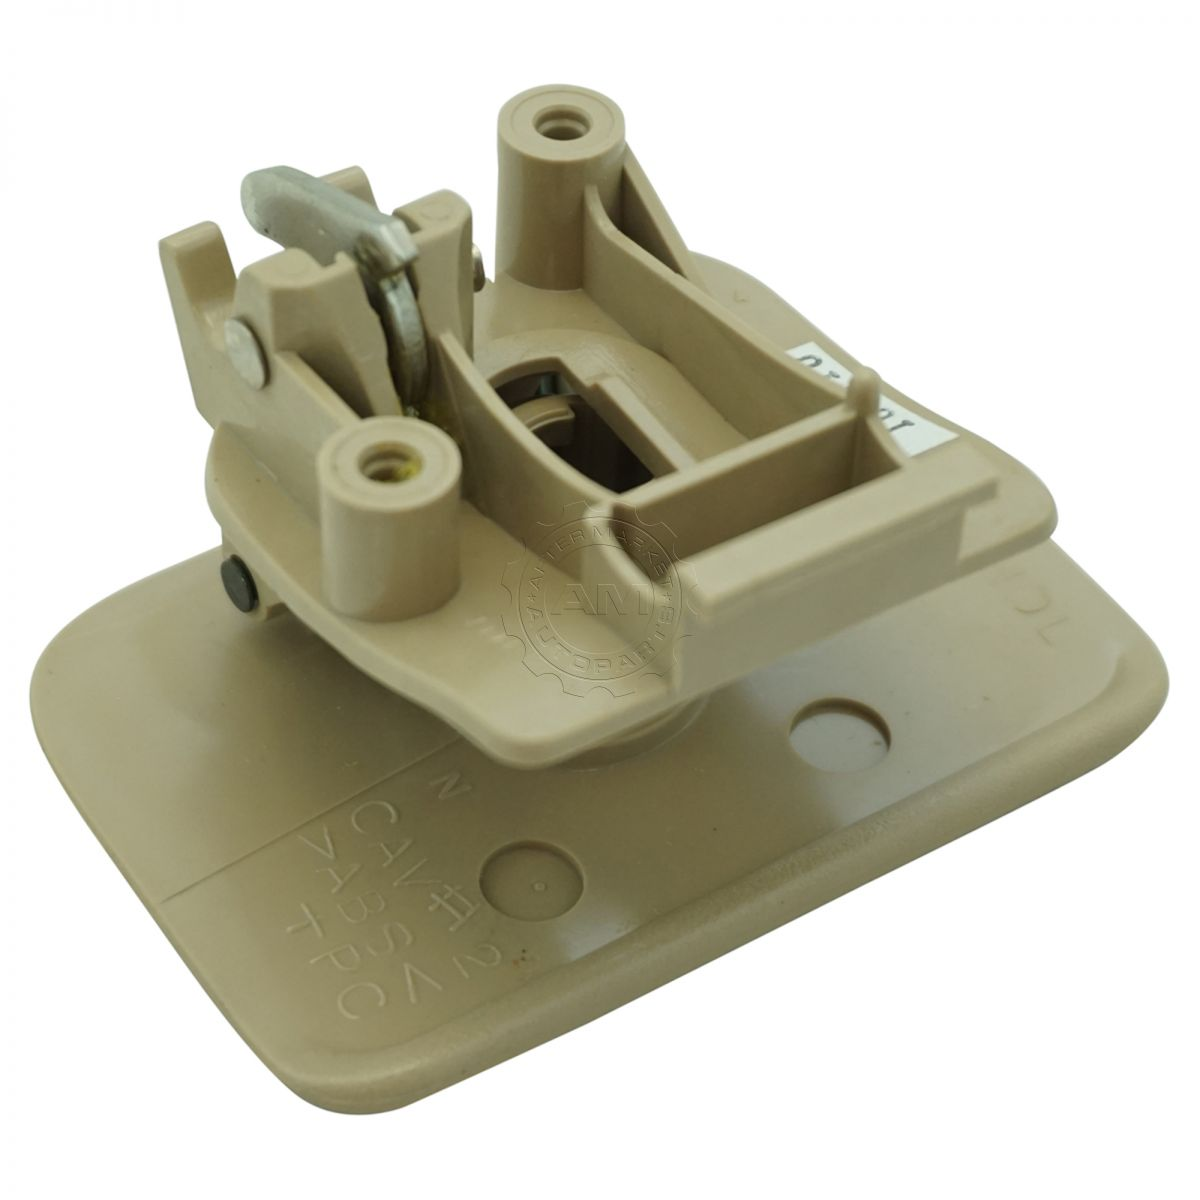 oem 20864472 glove box latch cashmere for cadillac cts srx. Black Bedroom Furniture Sets. Home Design Ideas